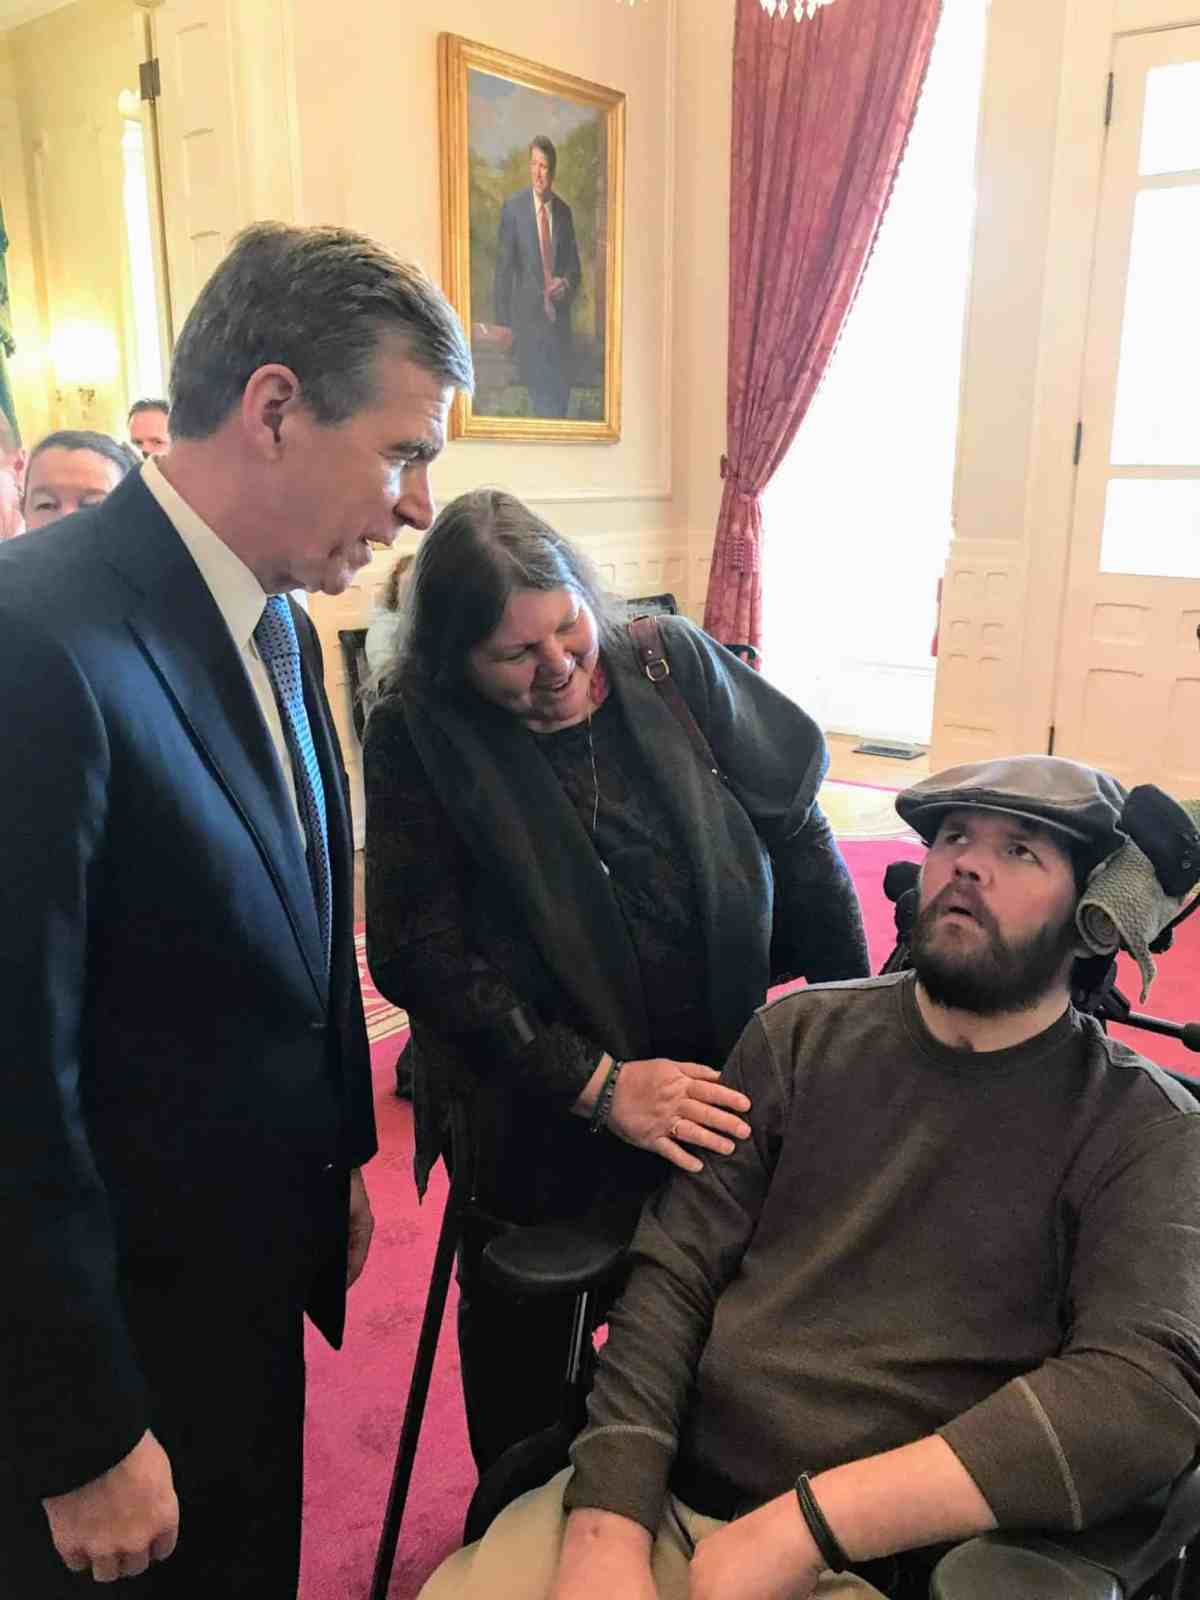 The governor standing on the left greets a man in a wheel chair and his mother, who stands between them.